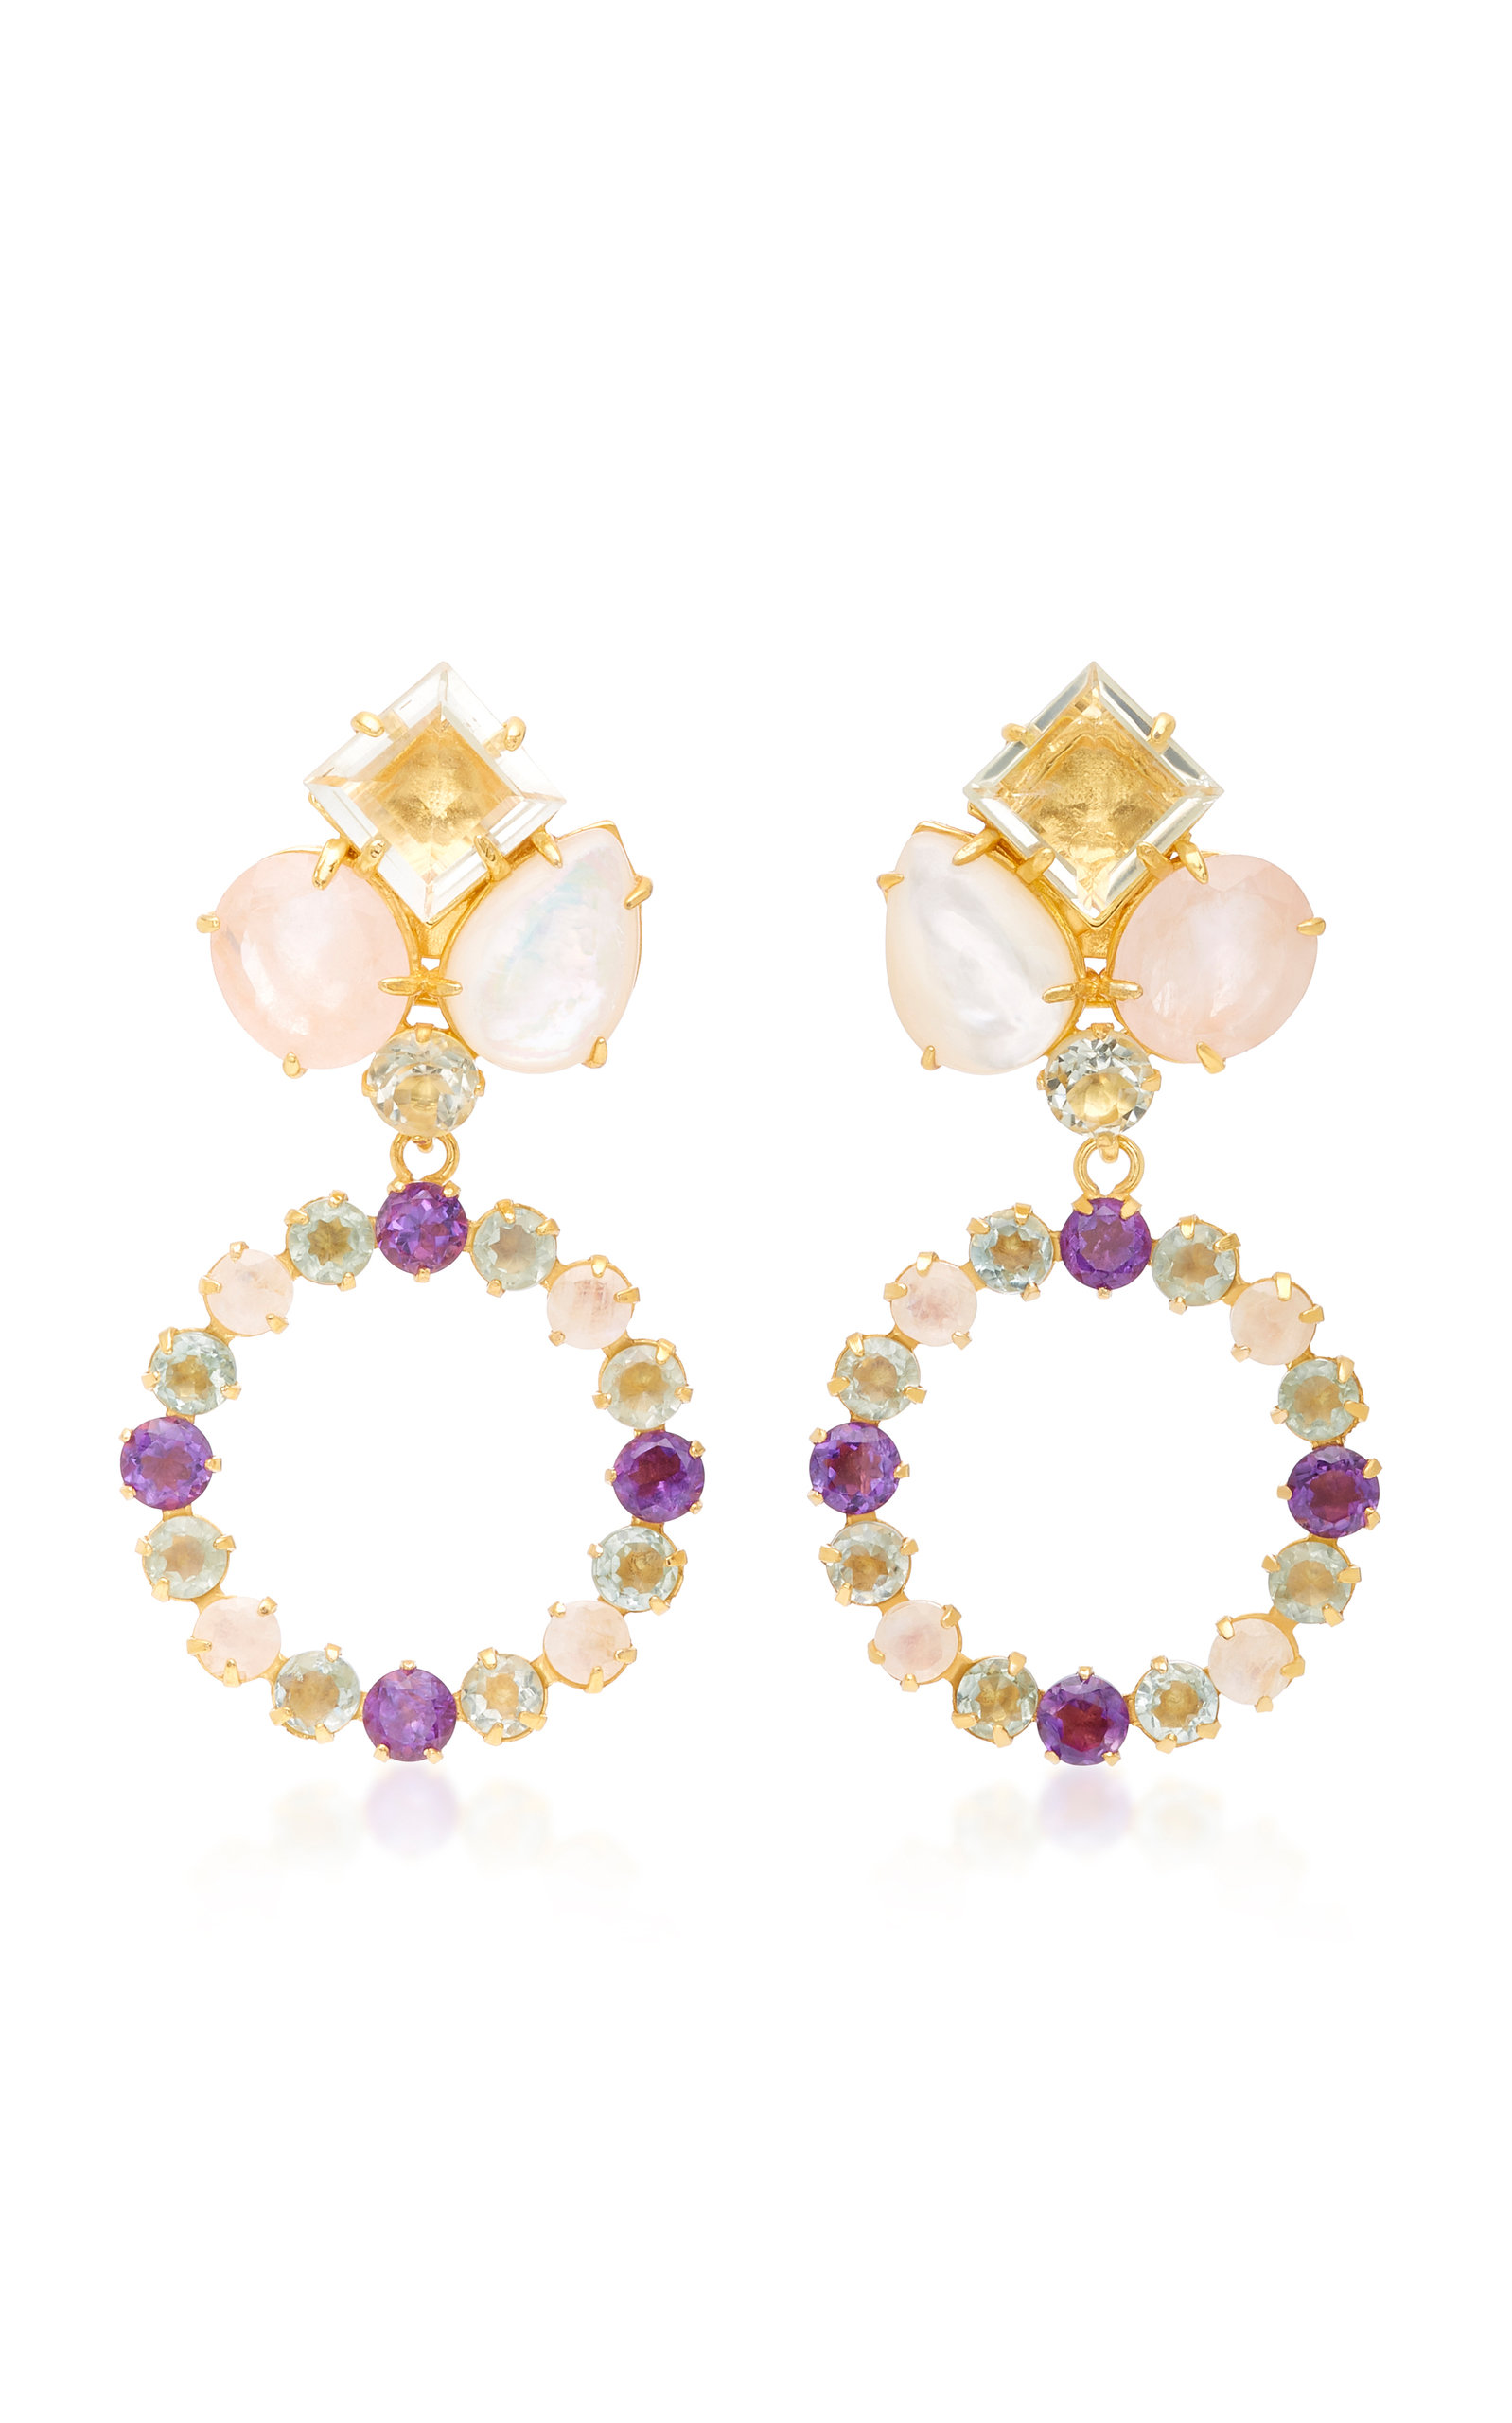 BOUNKIT AMETHYST MOTHER OF PEARL AND ROSE QUARTZ 14K GOLD-PLATED BRASS DROP EARRINGS